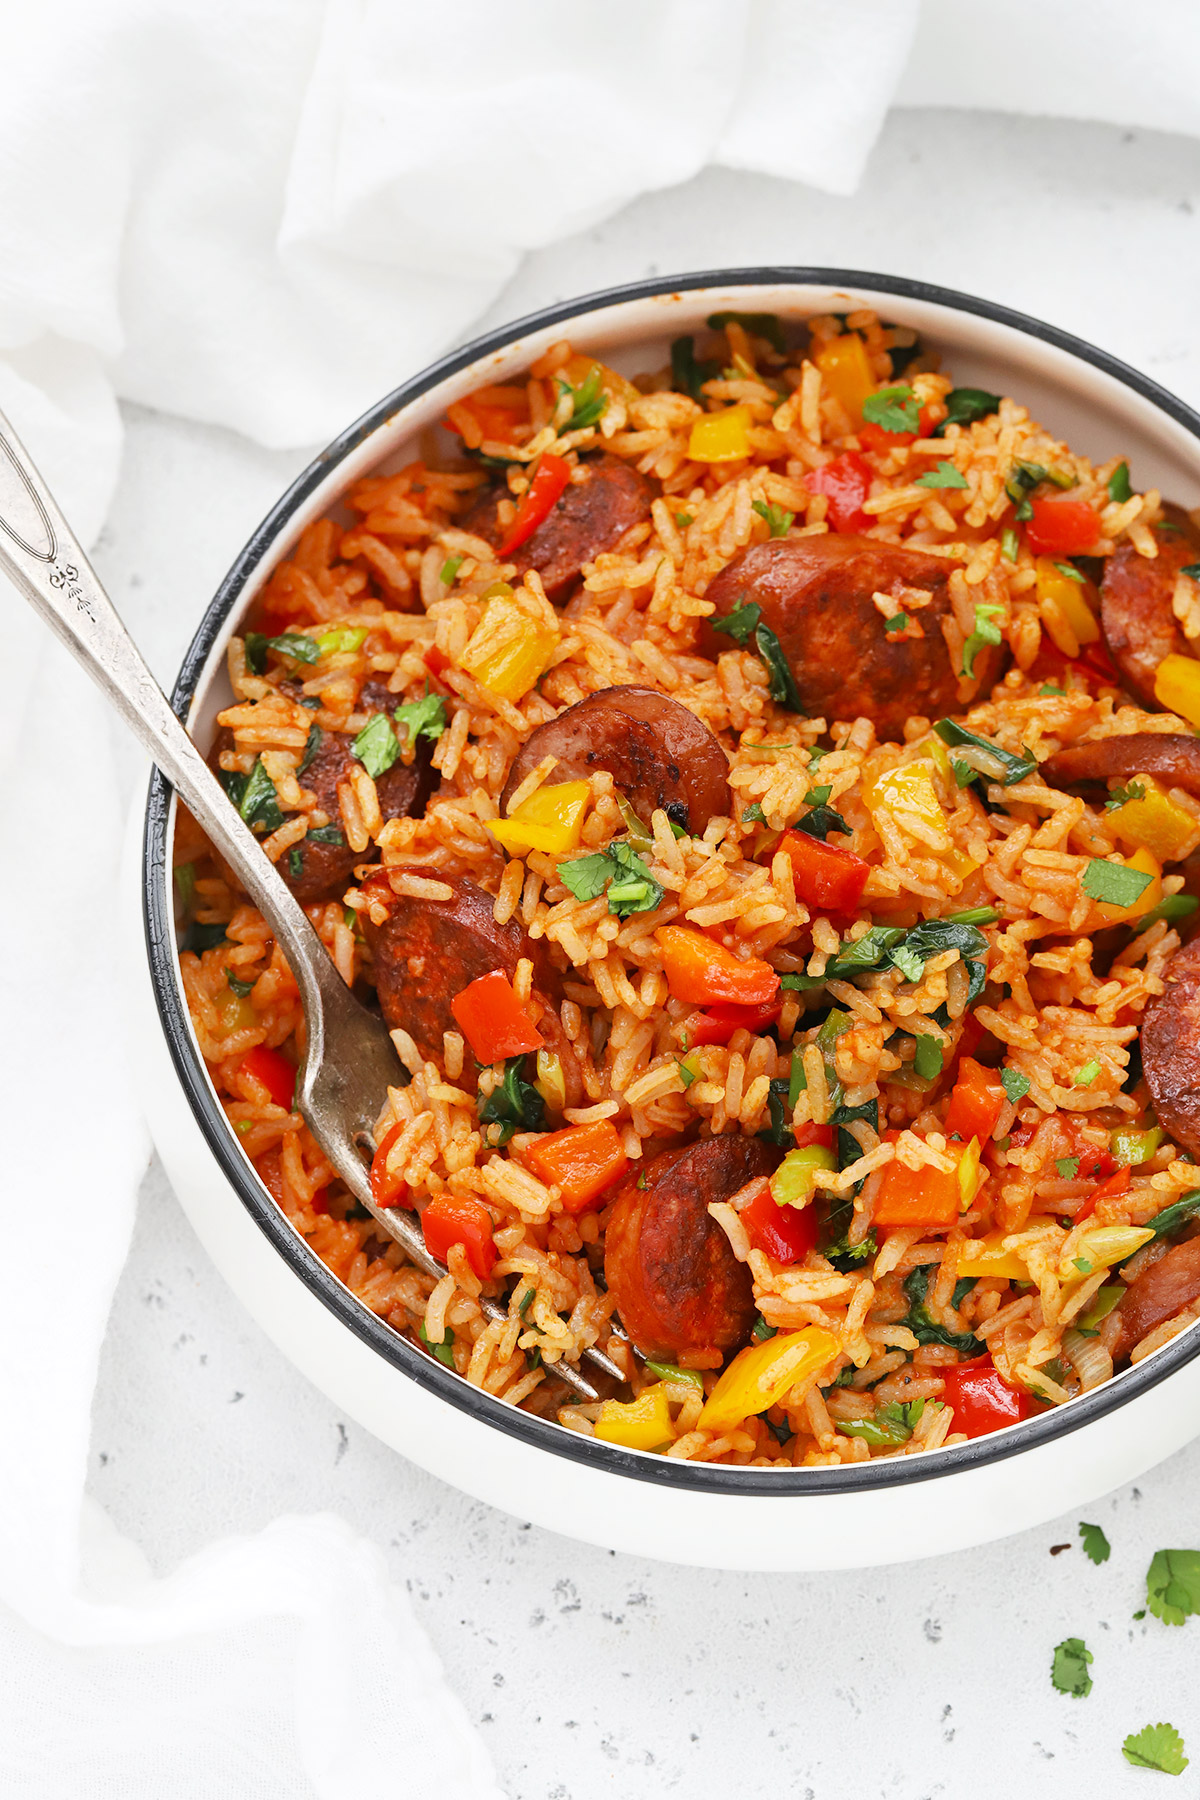 Front view of a bowl of Cajun Sausage and Rice Skillet on a white background